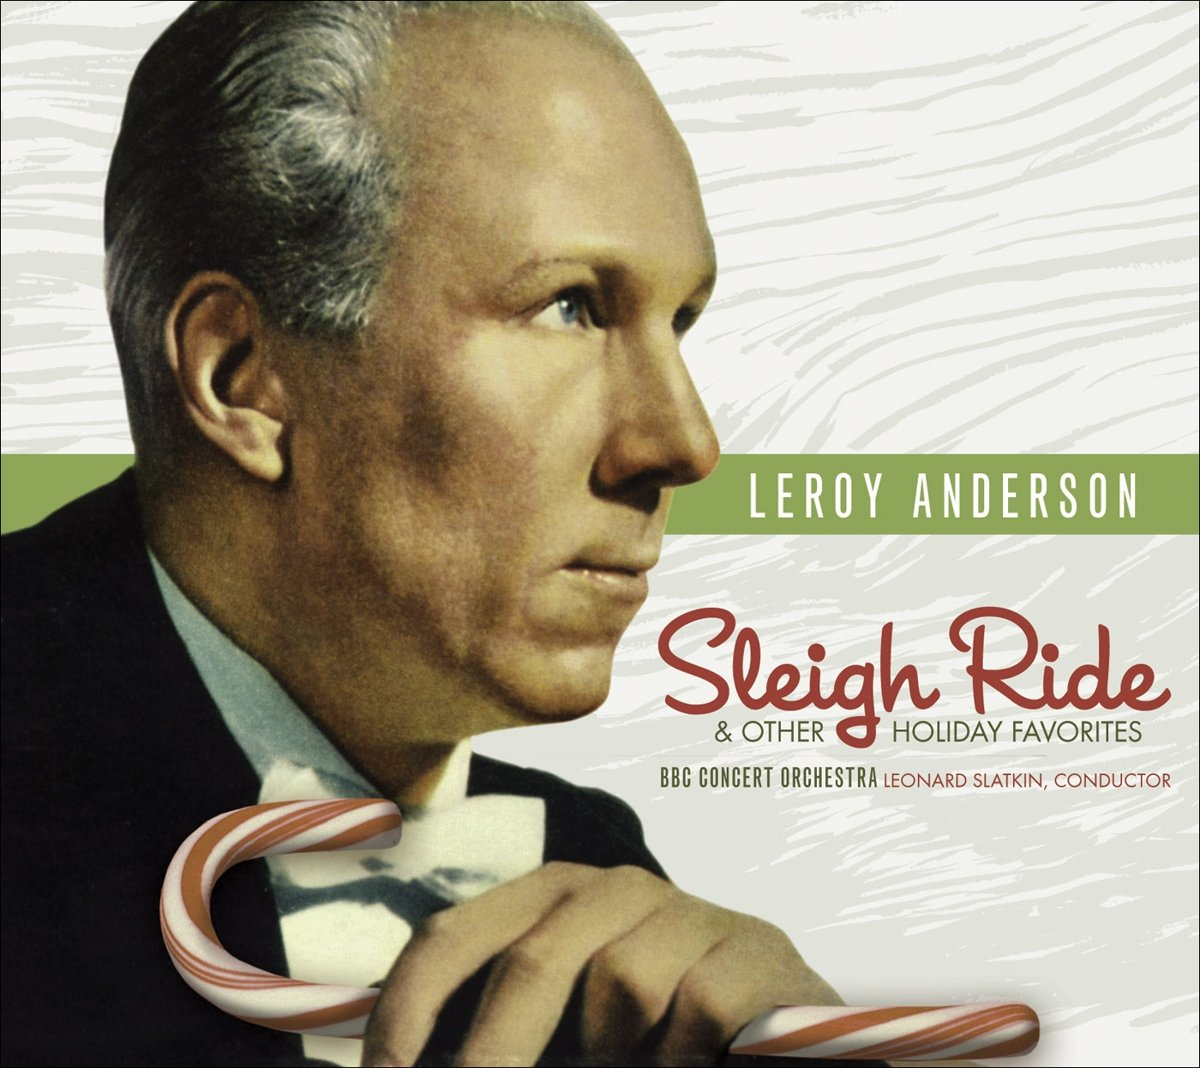 Sleigh Ride & Other Holiday Favorites by Naxos American Classics